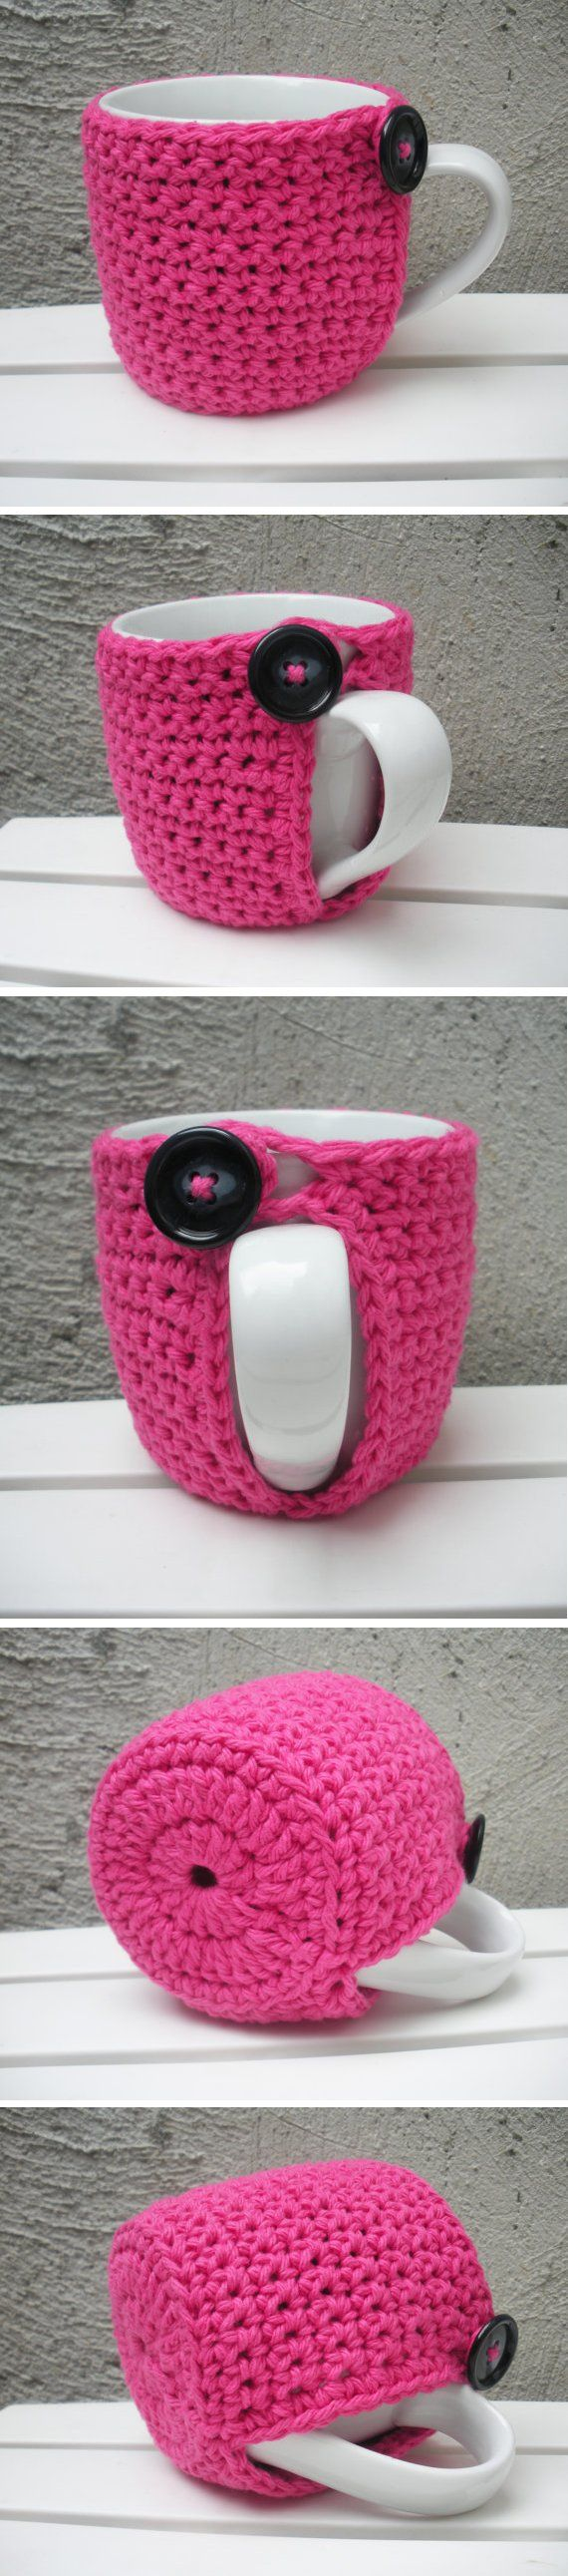 Crocheted mug cozy *Inspiration* - If you are having friends over for coffee or tea, make these in lots of different colors so everyone can keep track of their drink OR make them all the same (whatever colors go with your theme) and add their initials or name. Let your guests take them home.